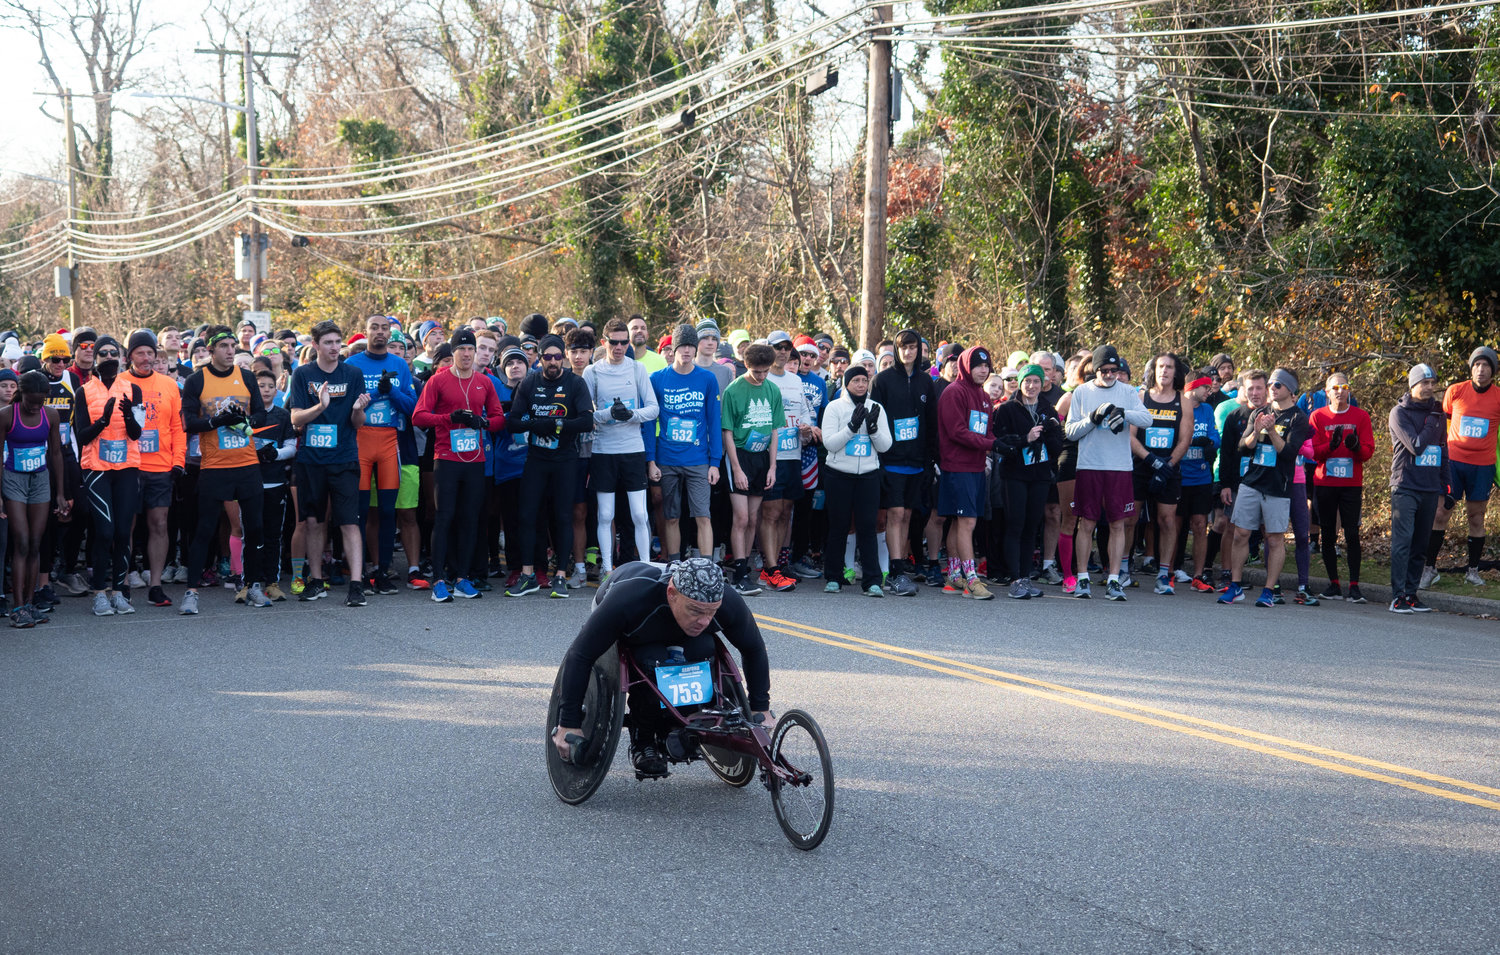 Wheelchair athlete Peter Hawkins, 55, of Malverne was given a 15-second head start as the rest of the field watched before the race officially began.